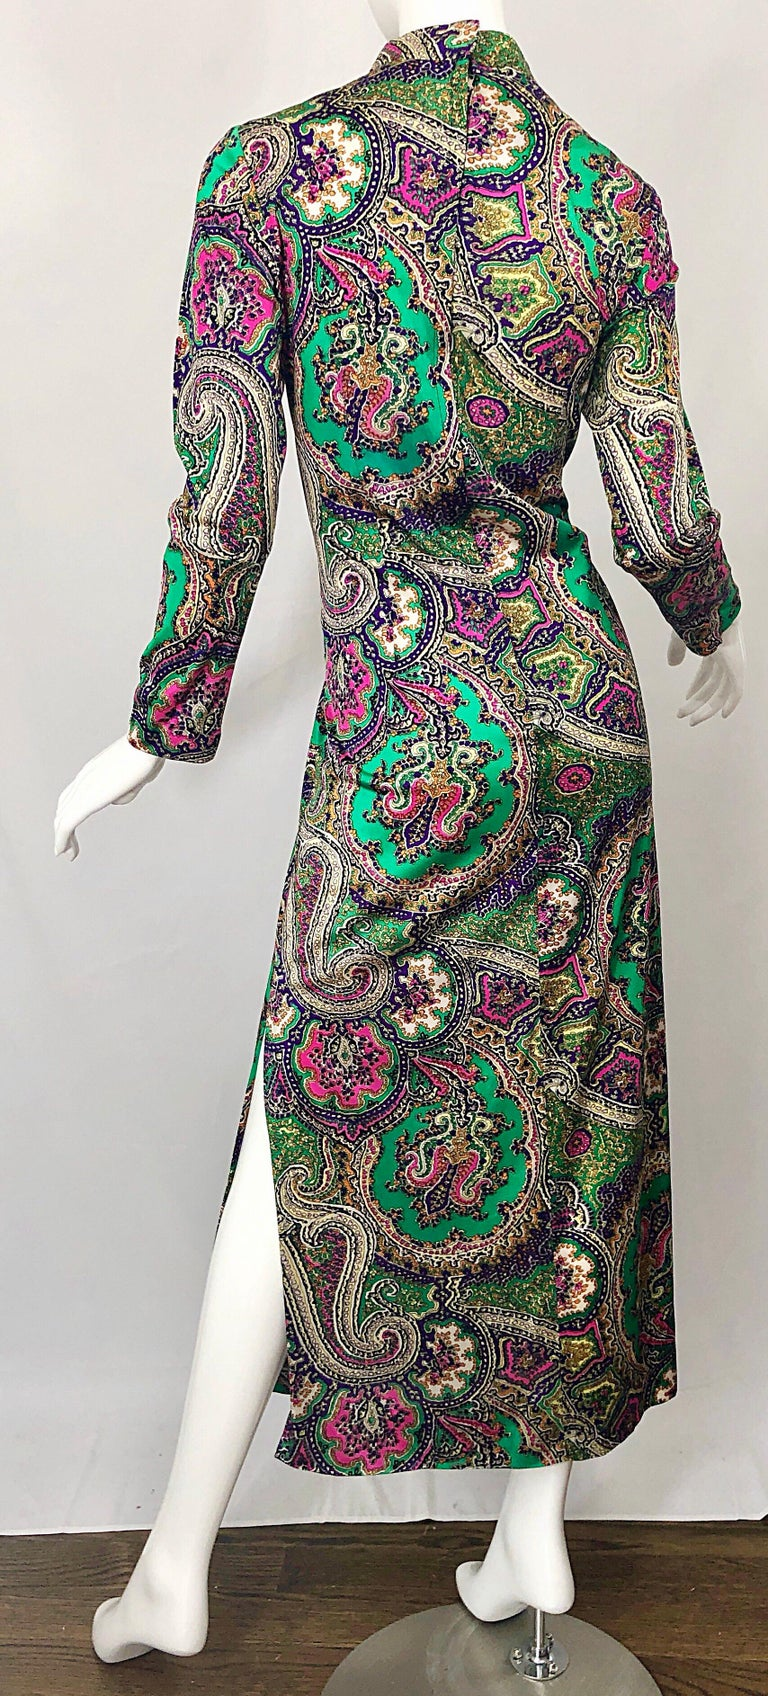 1970s Cheongsam Inspired Colorful Paisley Print Jersey Long Sleeve Maxi Dress For Sale 7